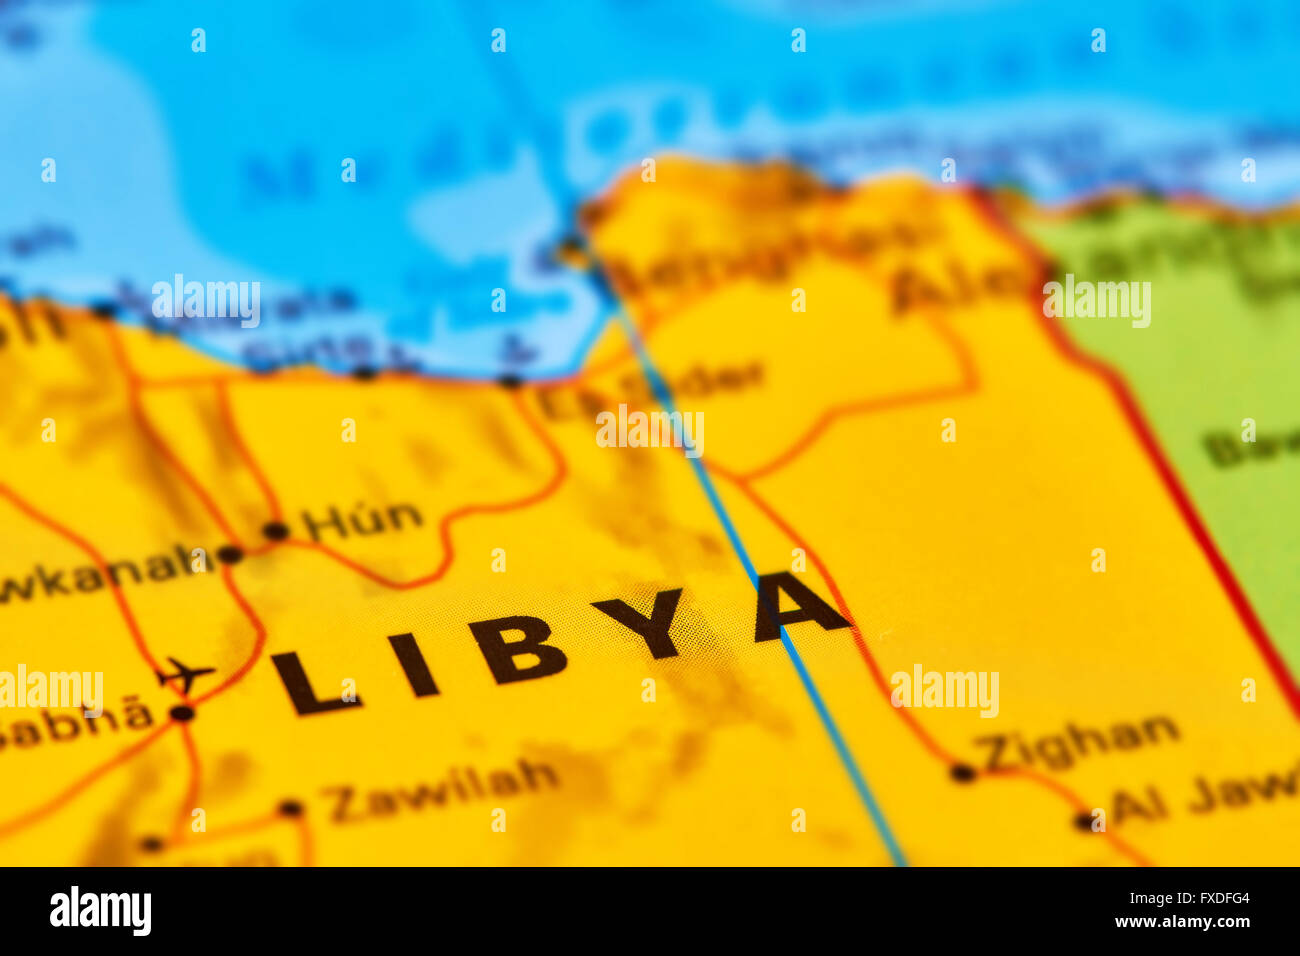 Libya country in africa on the world map stock photo 102330484 alamy libya country in africa on the world map gumiabroncs Gallery